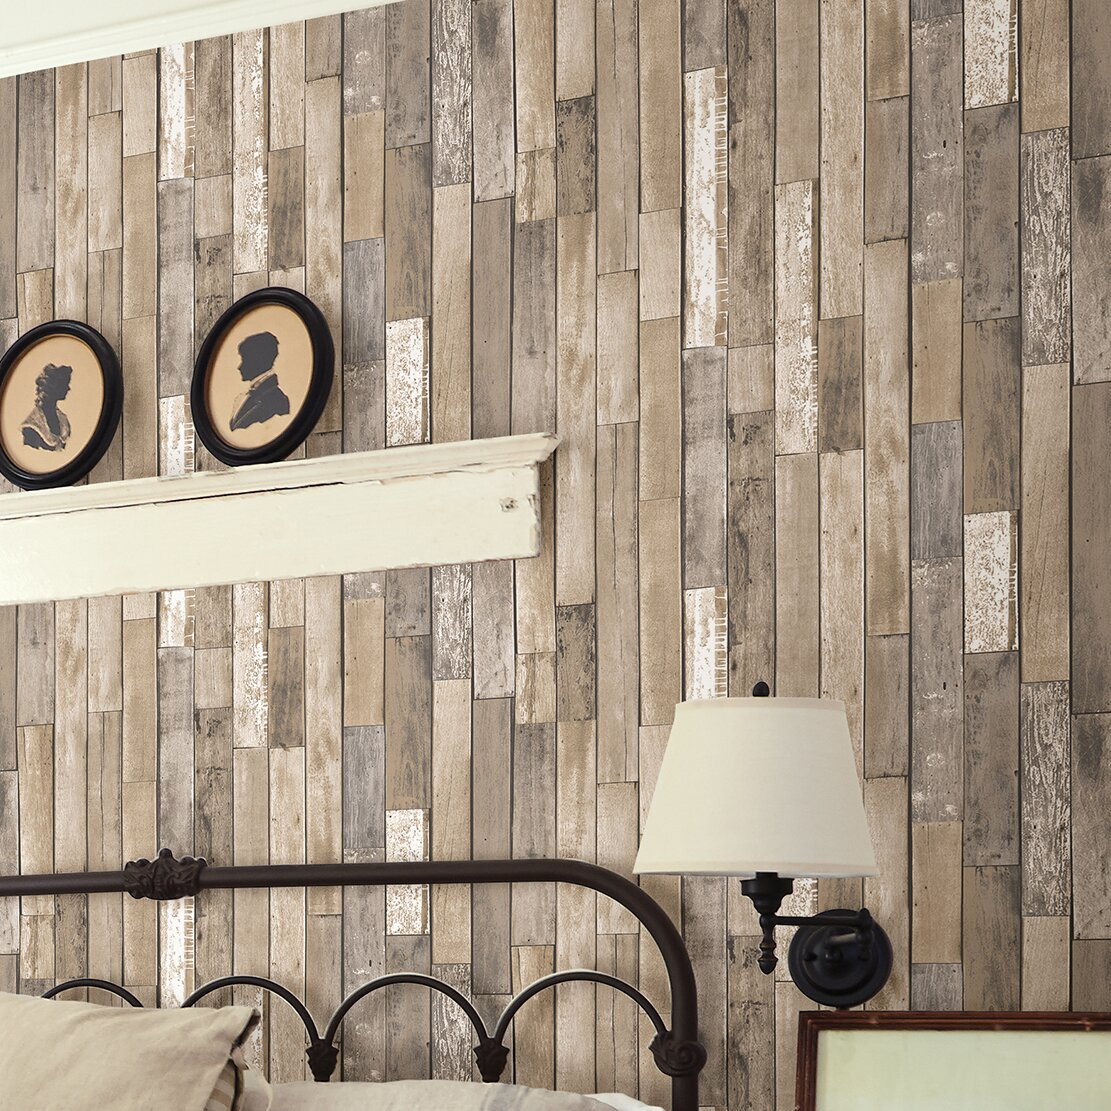 Brewster home fashions essentials barn board thin plank 33 for Brewster wallcovering wood panels mural 8 700